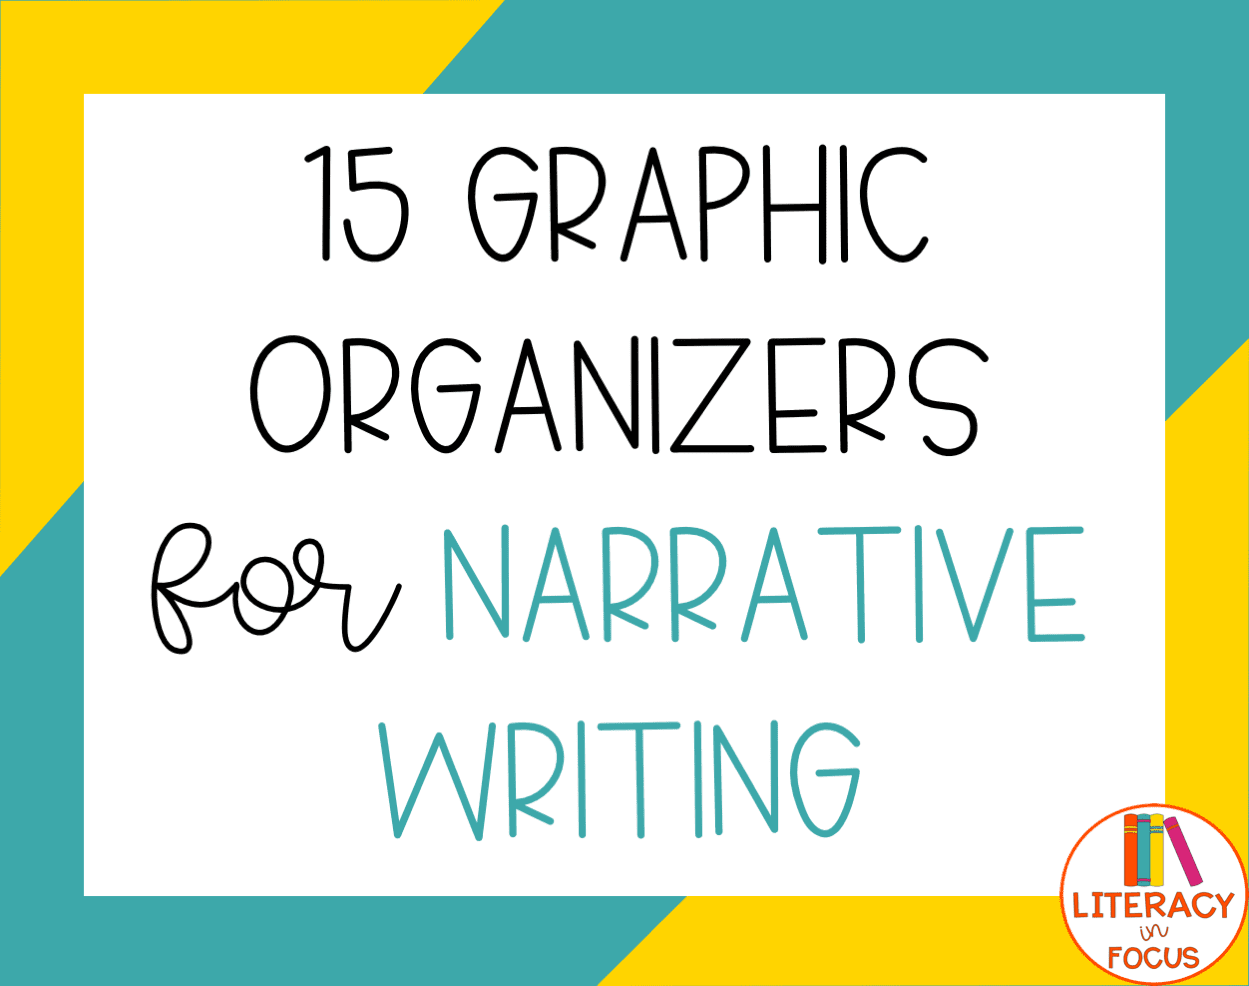 15 Graphic Organizers for Narrative Writing | Literacy In Focus